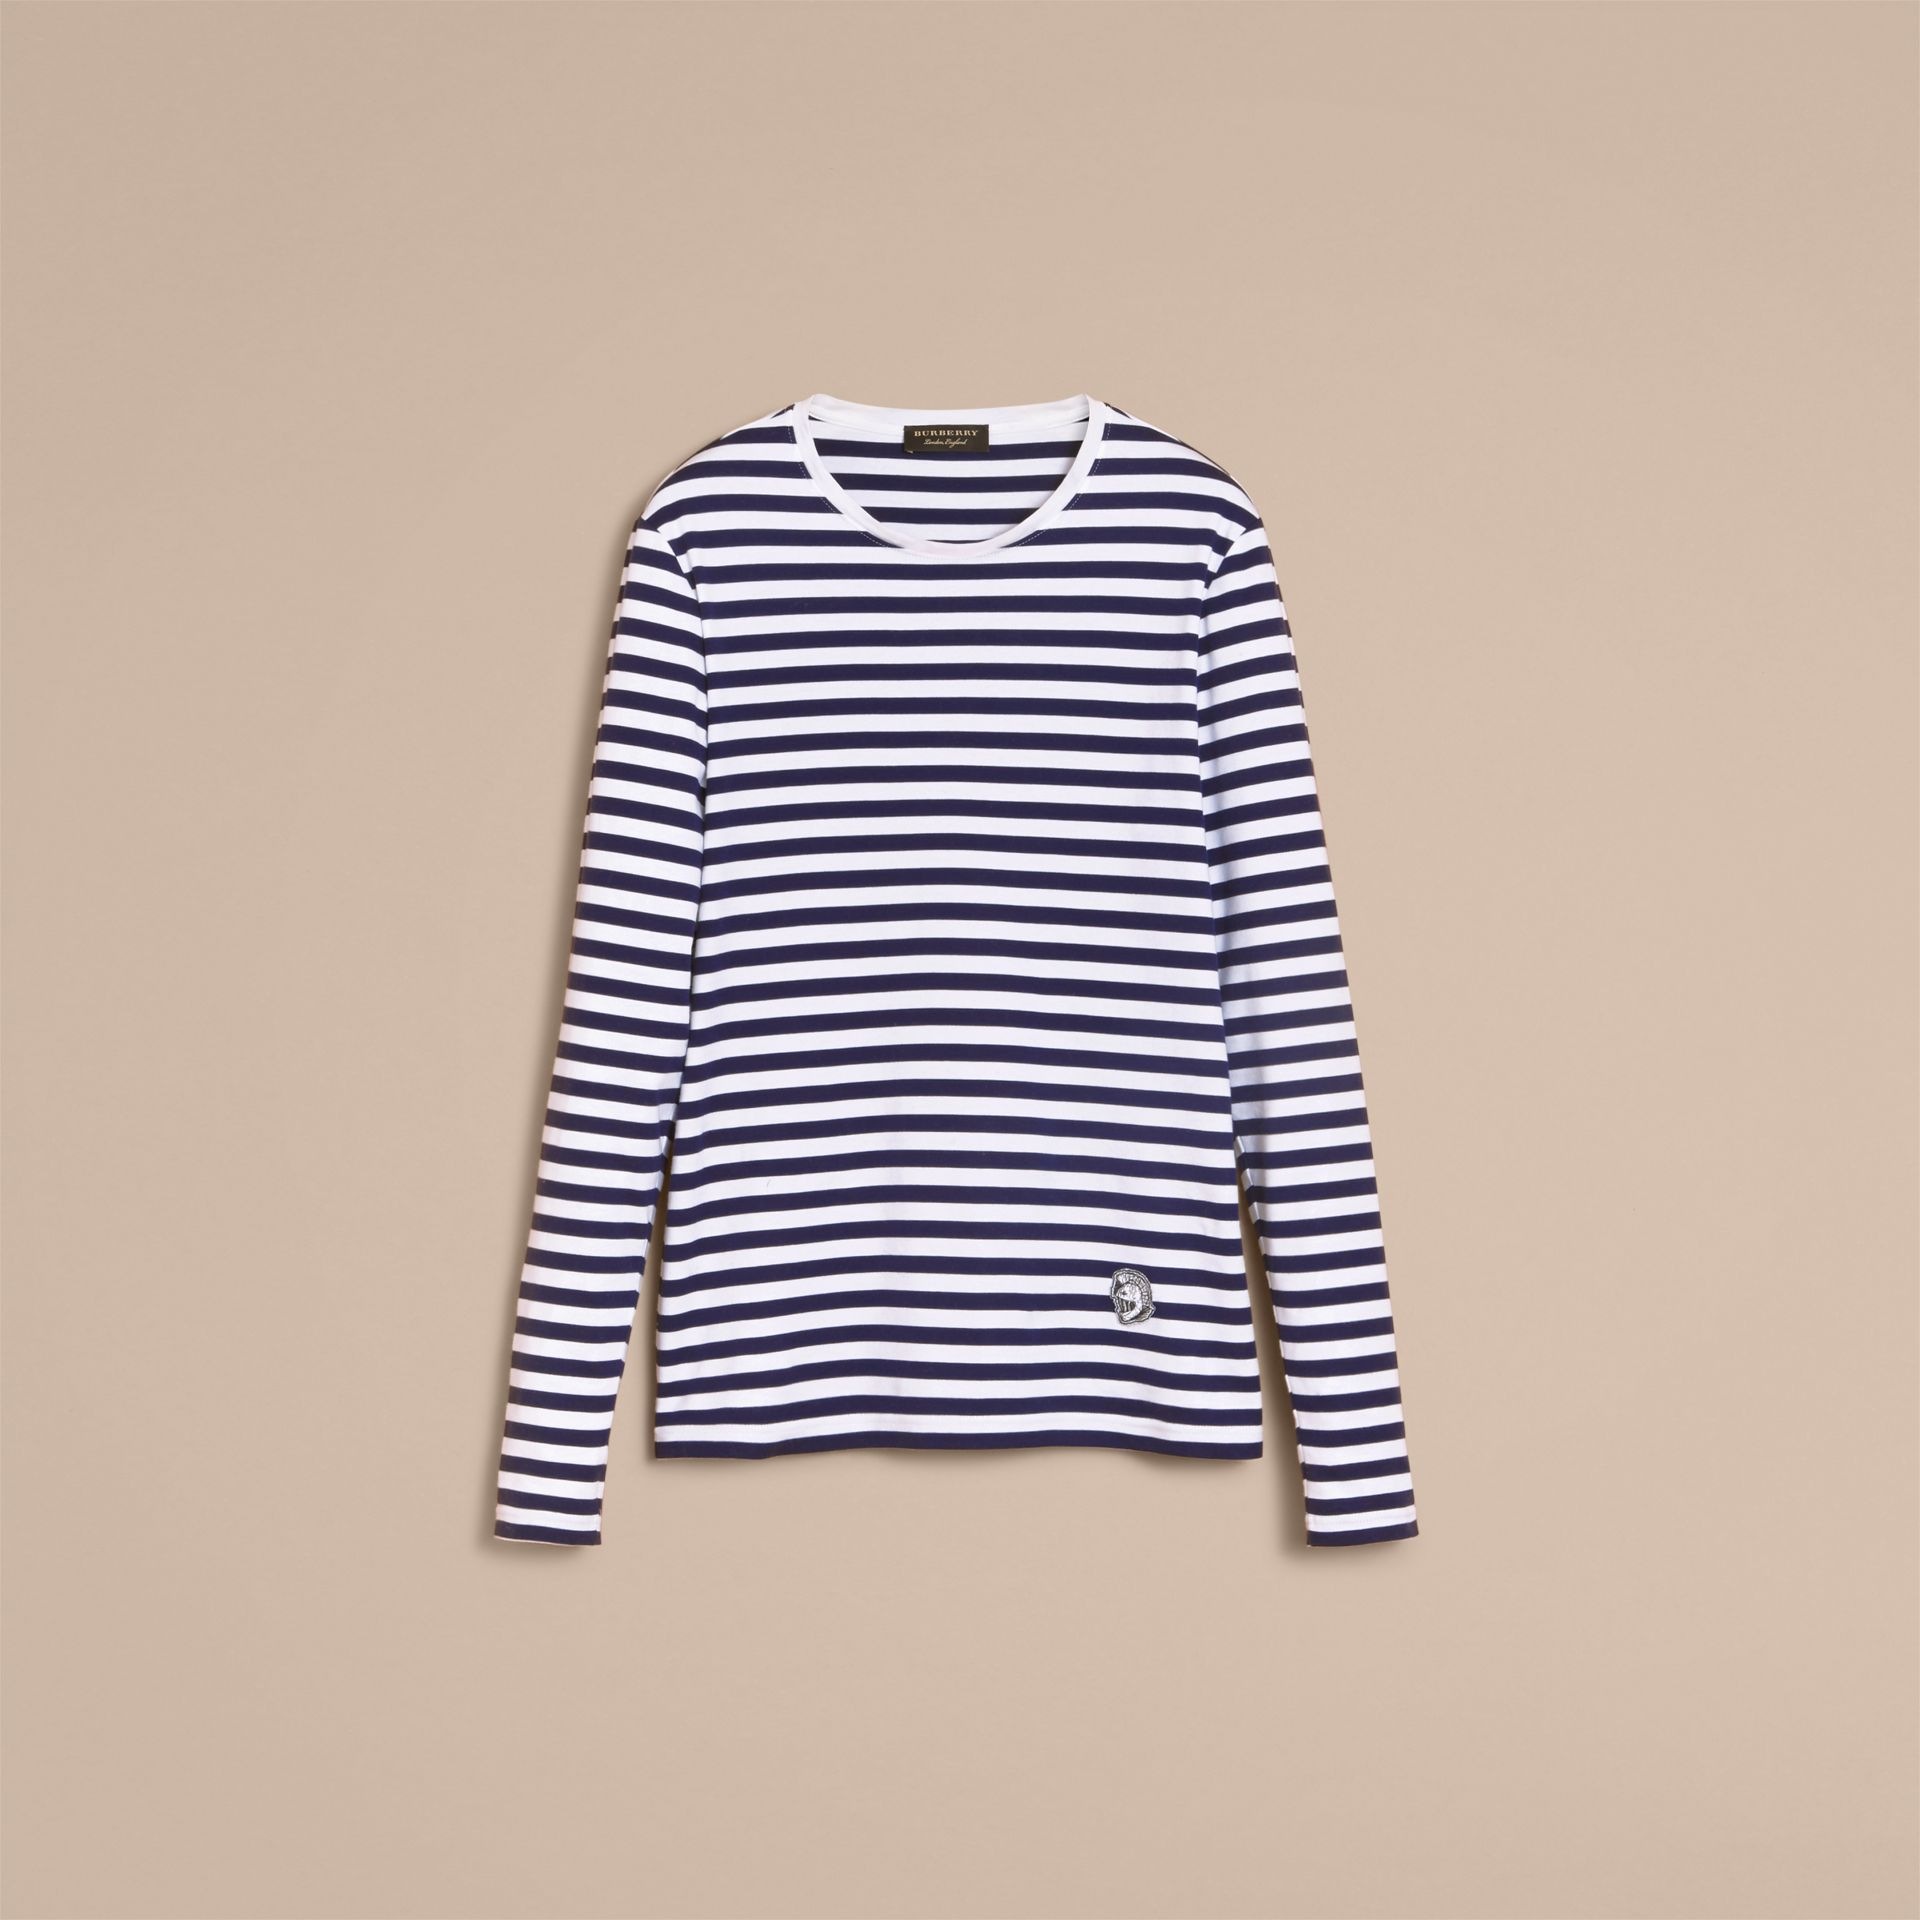 Unisex Pallas Helmet Motif Breton Stripe Cotton Top - Men | Burberry - gallery image 4